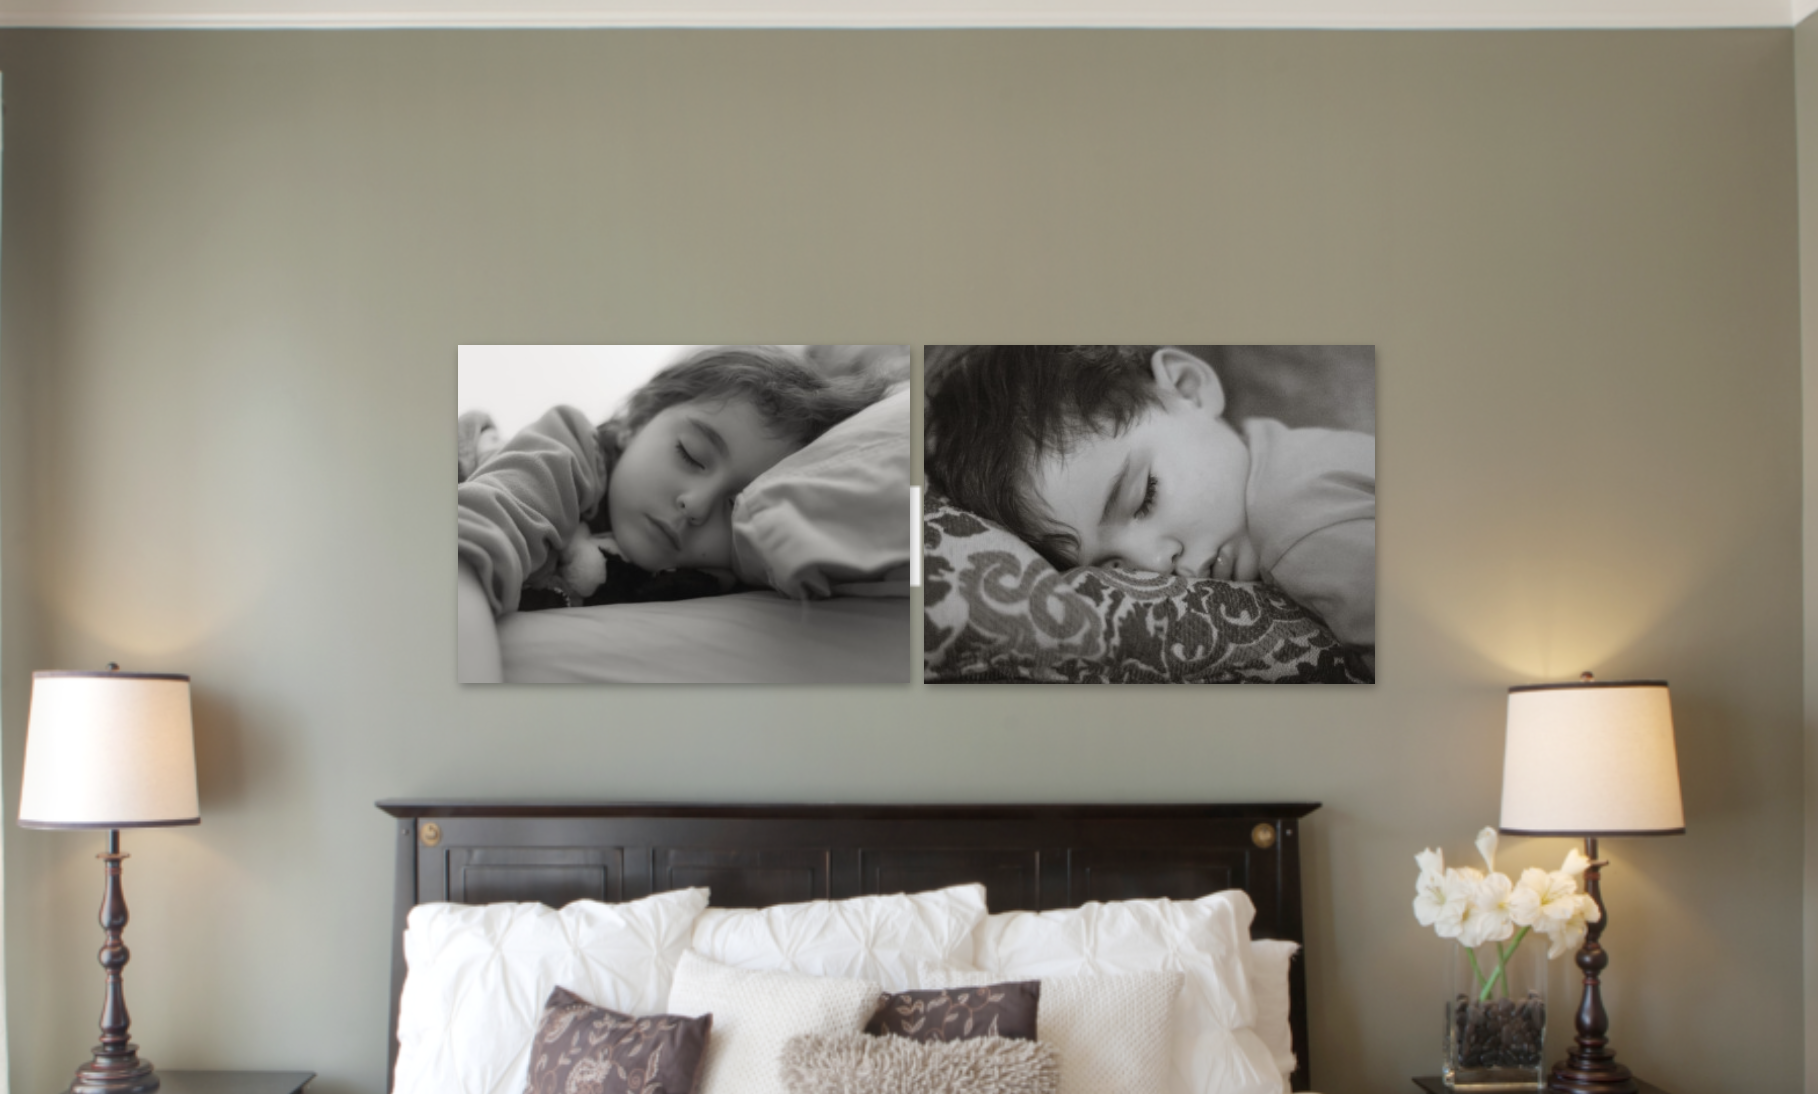 Beautiful black and white child photo images in the perfect place!